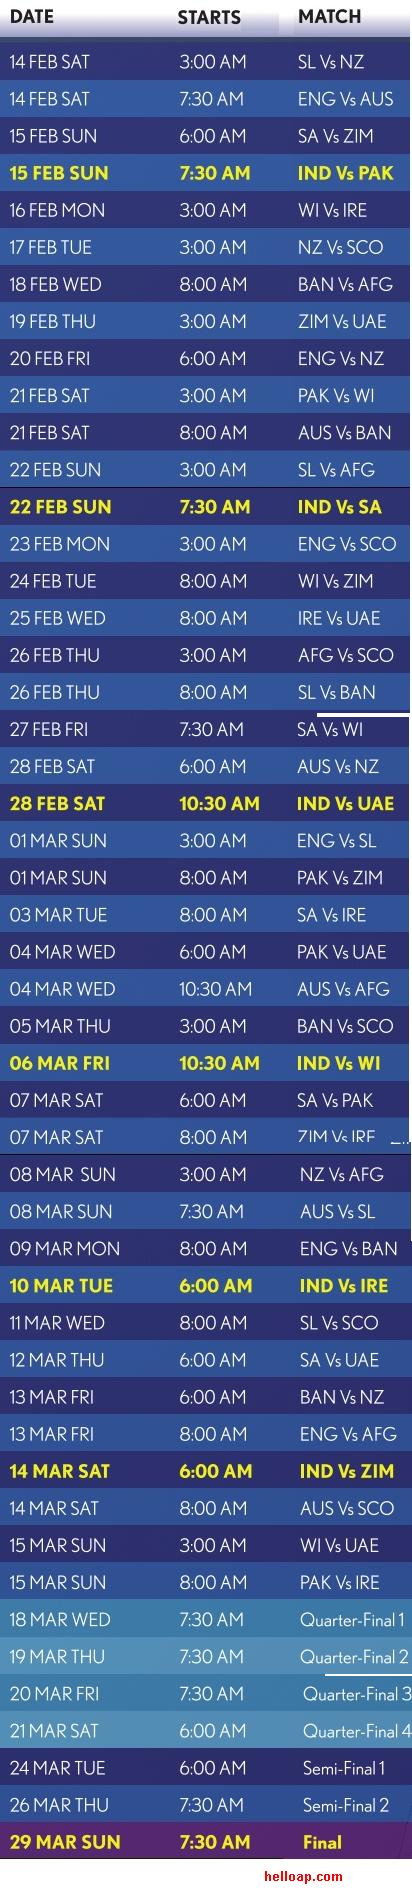 World Cup Cricket Matches 2015